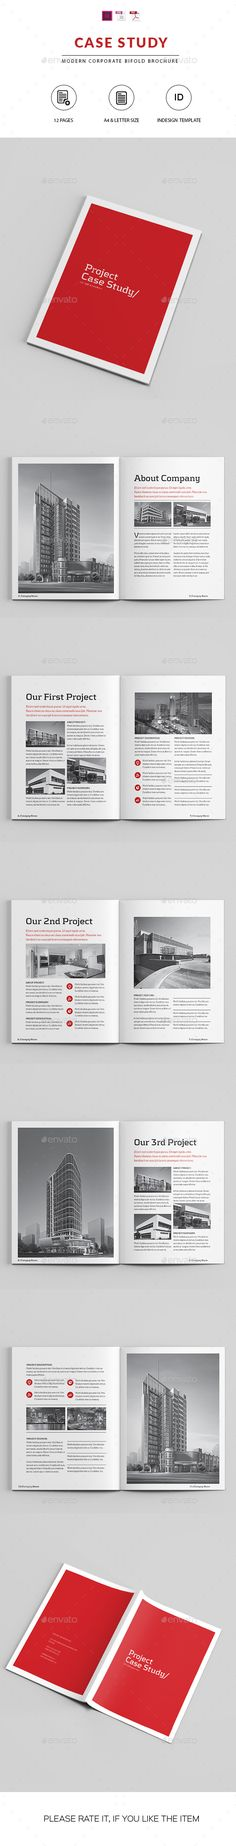 Case Study Booklet Indesign Template by smmr Project case study Brochure template.Easy to use this template.Easily you can edit this template. Case Study Template, Booklet Template, Letterhead Template, Indesign Templates, Brochure Template, Booklet Layout, Booklet Design, Graphic Design Templates, Print Templates